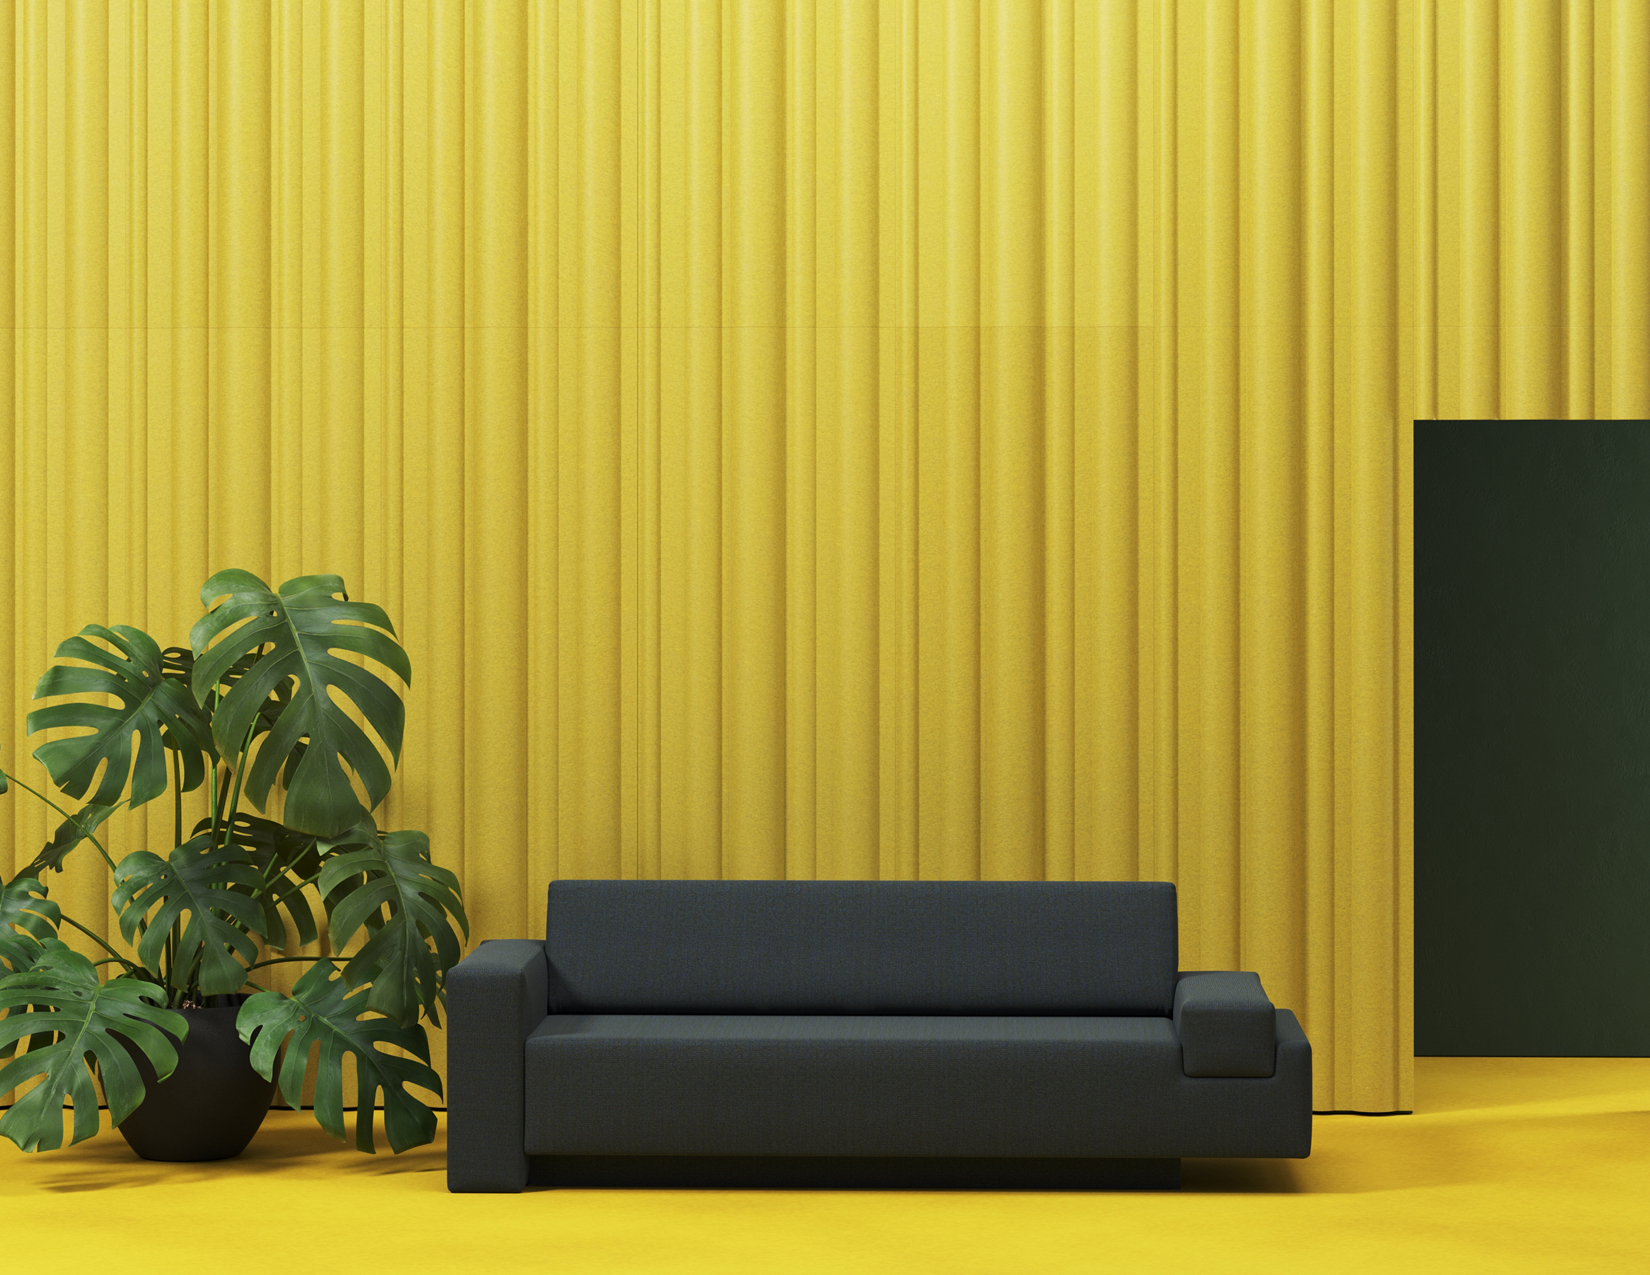 A yellow room with black couch